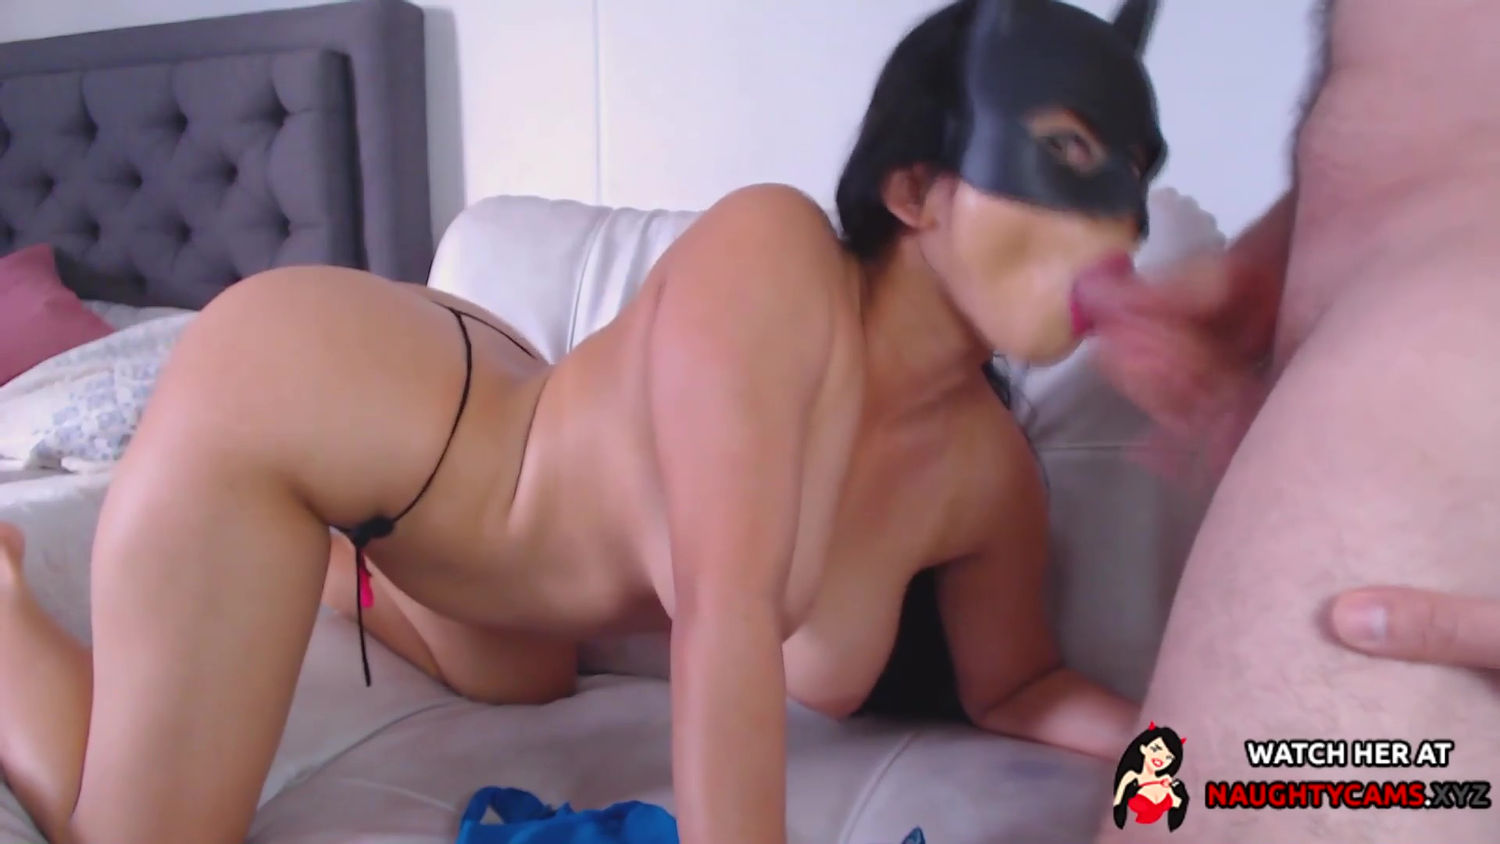 Hot couple Dirtycouple_02 does a mouth cum shot on their live show!!